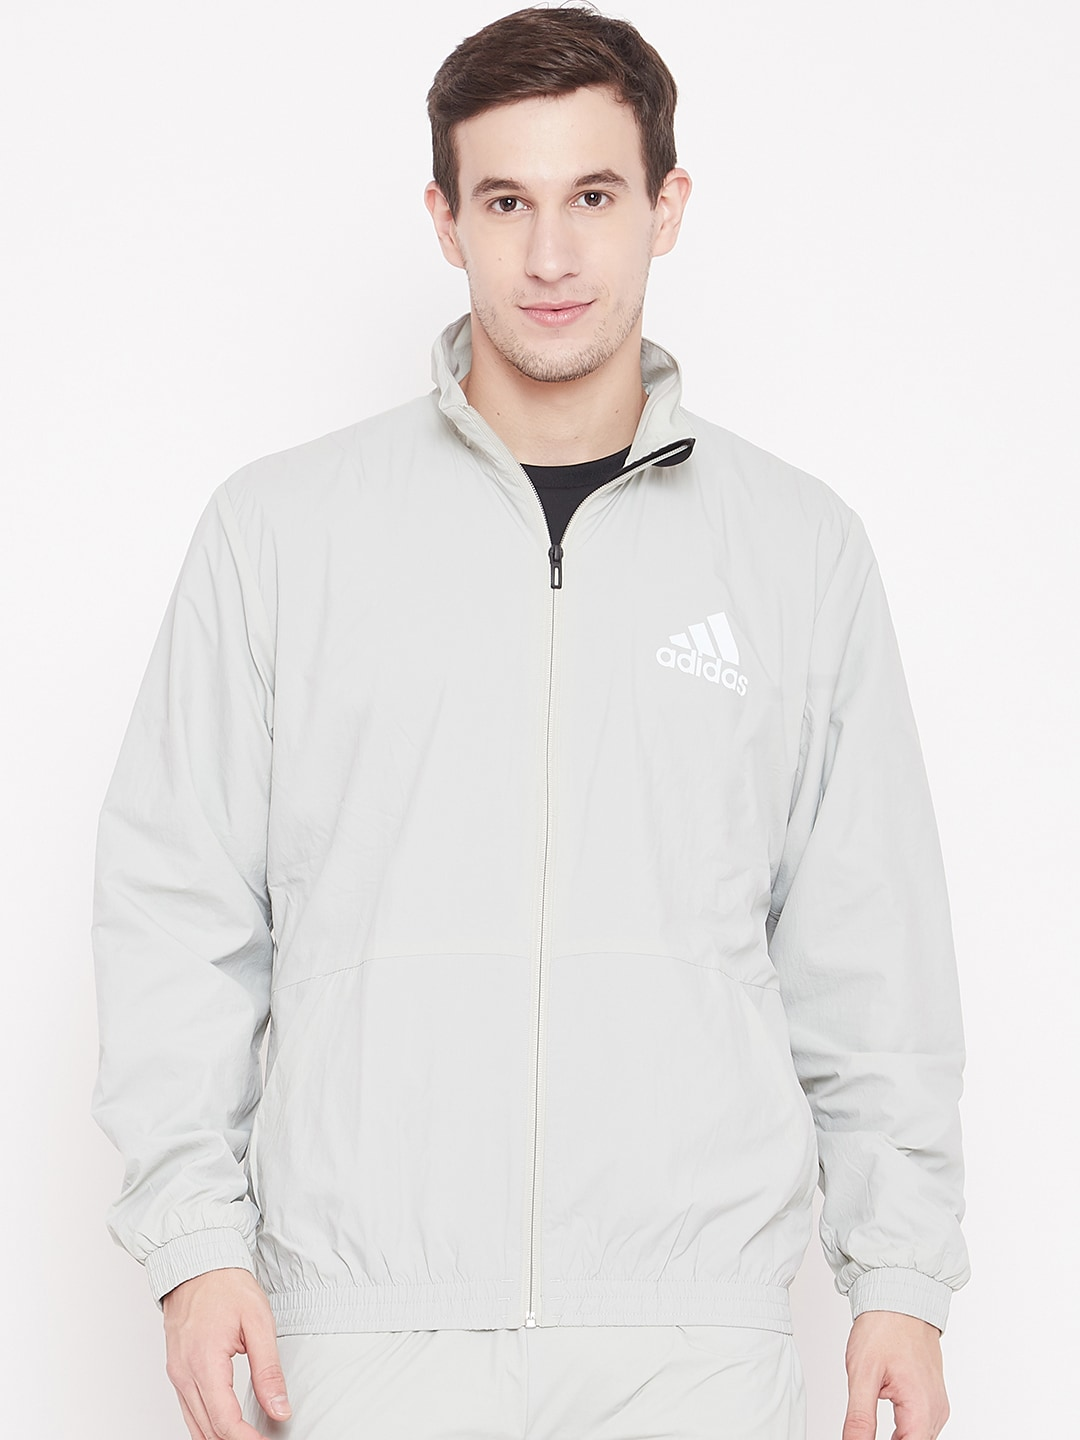 half off b9673 4e16a Adidas White Topwear - Buy Adidas White Topwear online in India